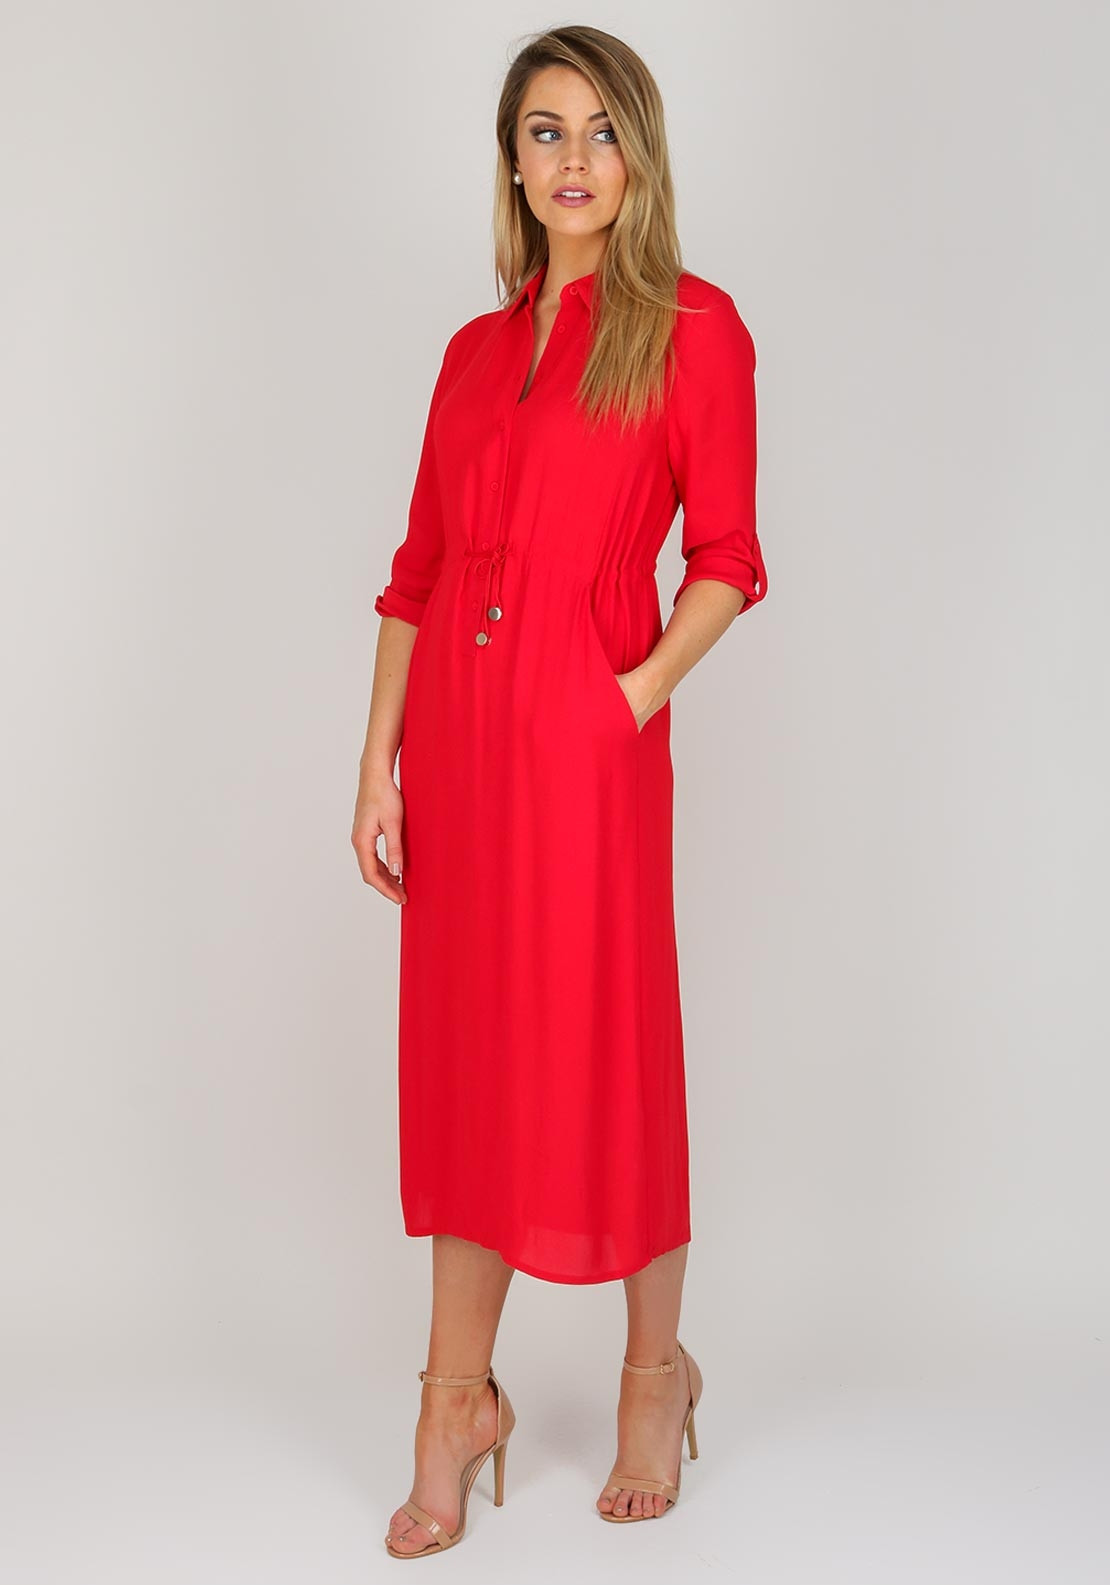 French Connection Womens Midi Shirt Dress, Red | McElhinneys